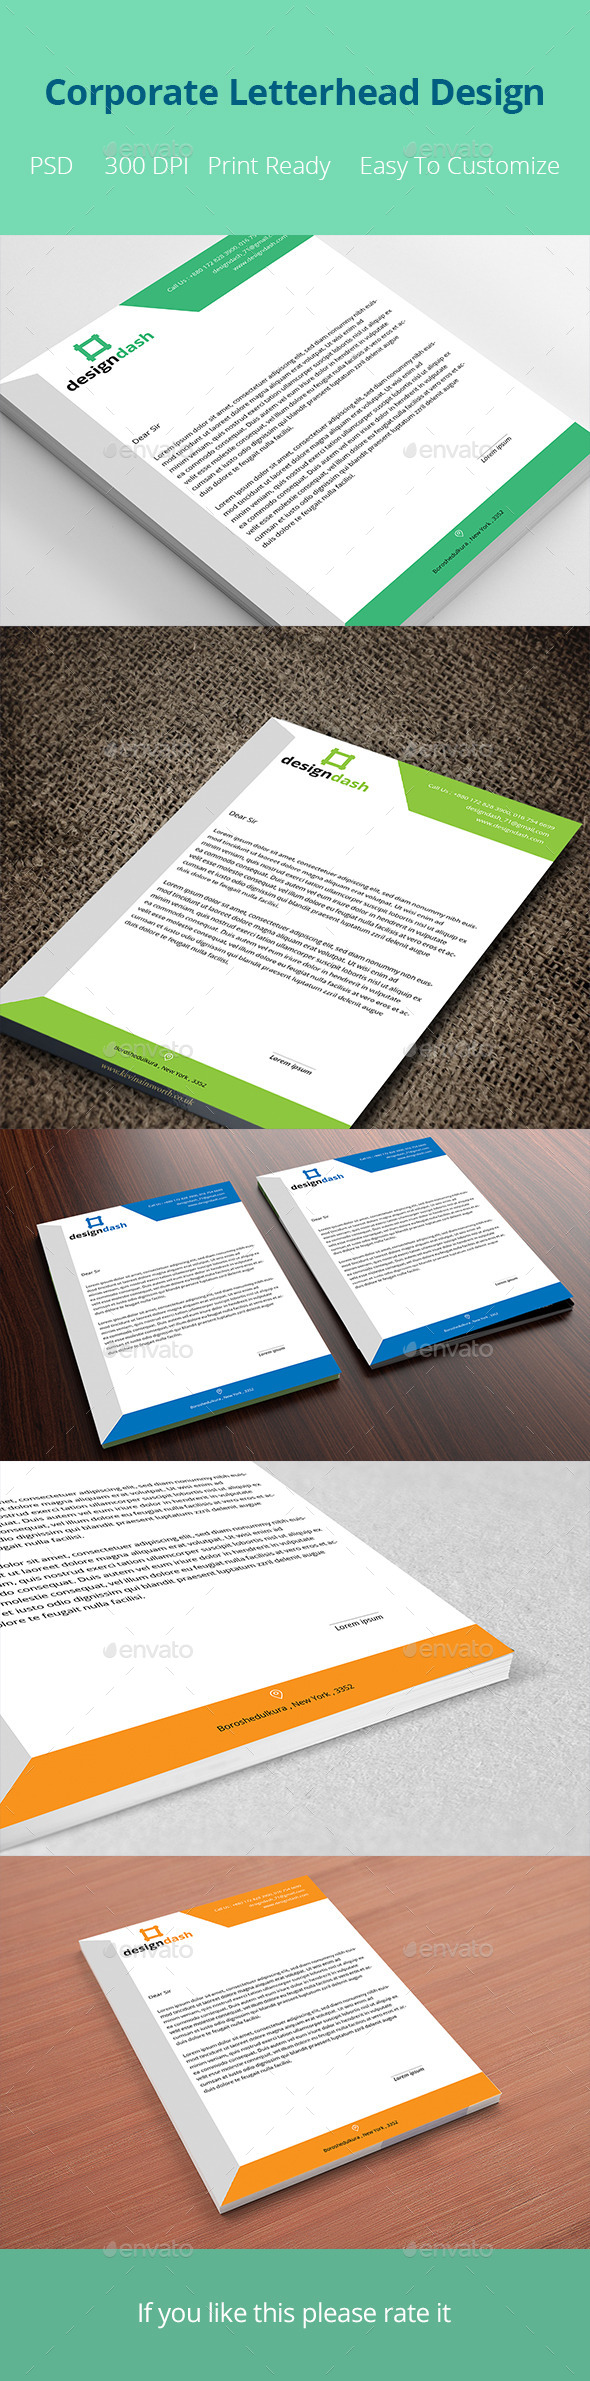 Corporate Letterhead Design Template